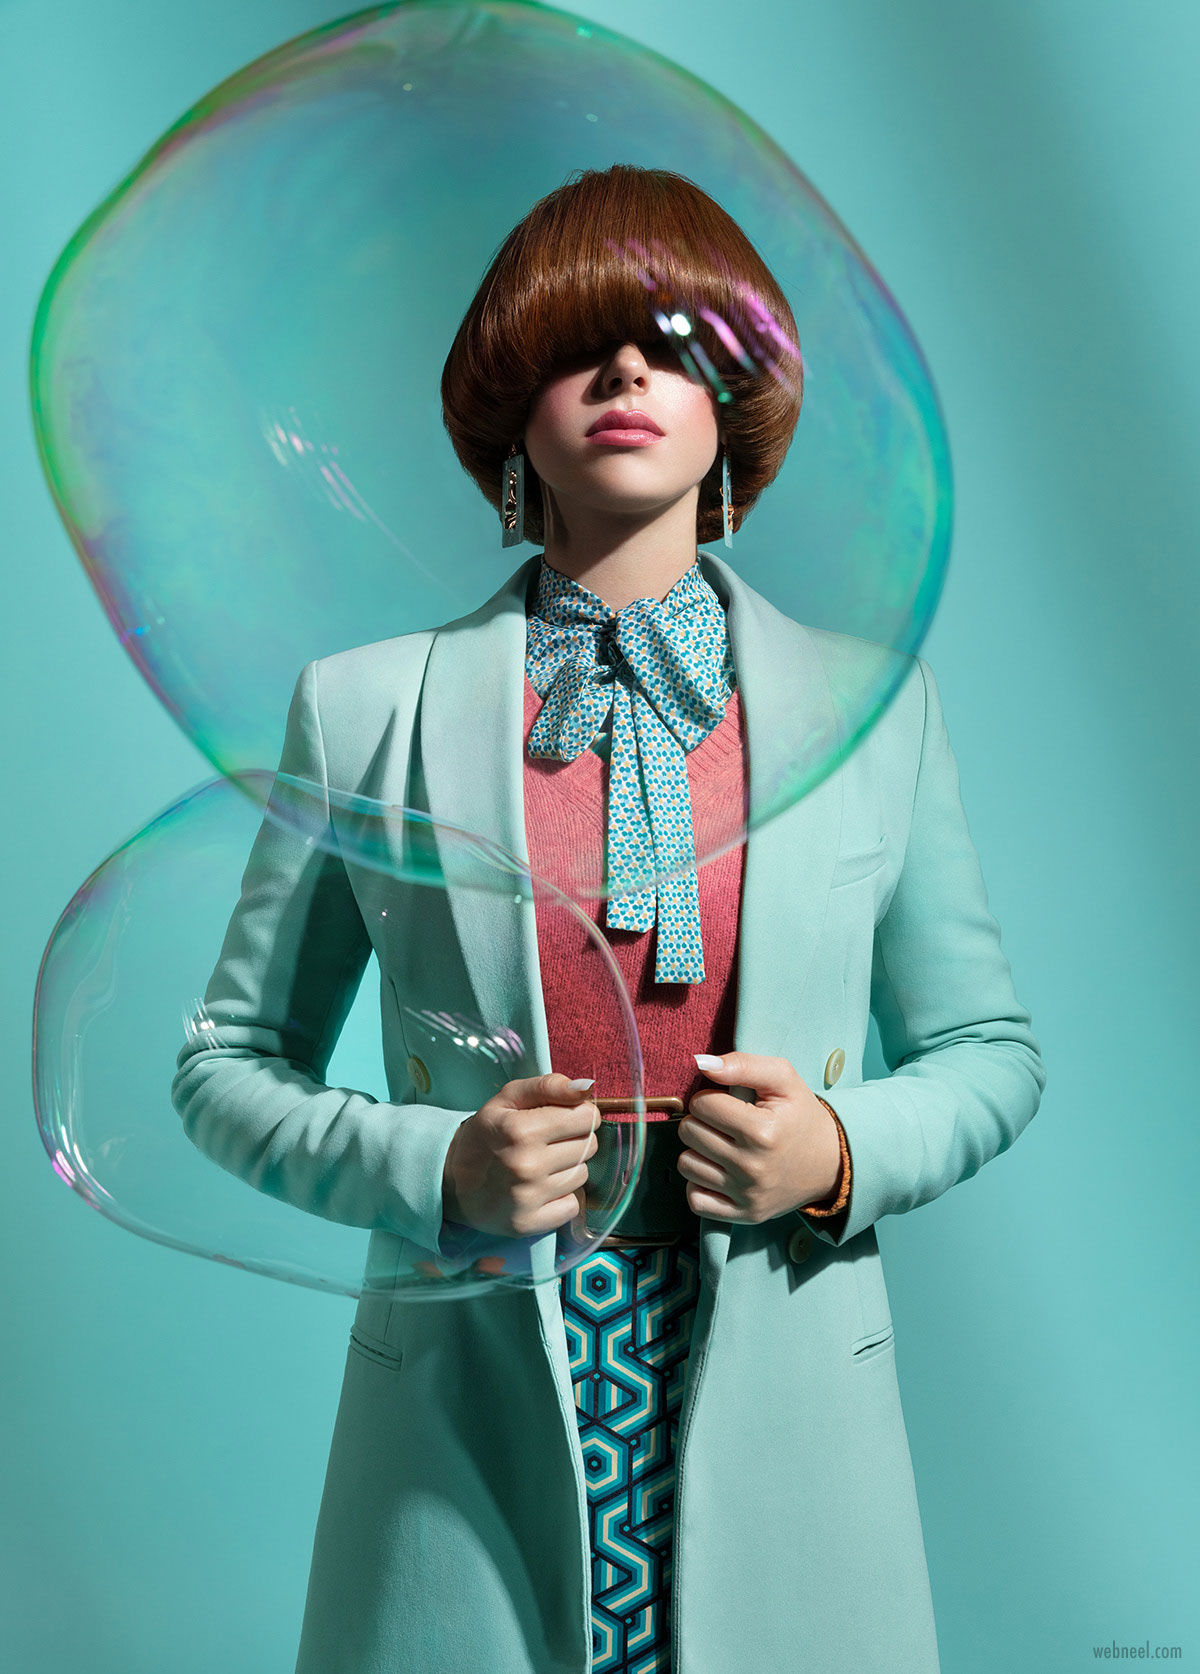 fashion photography bubbles by ahmed othman